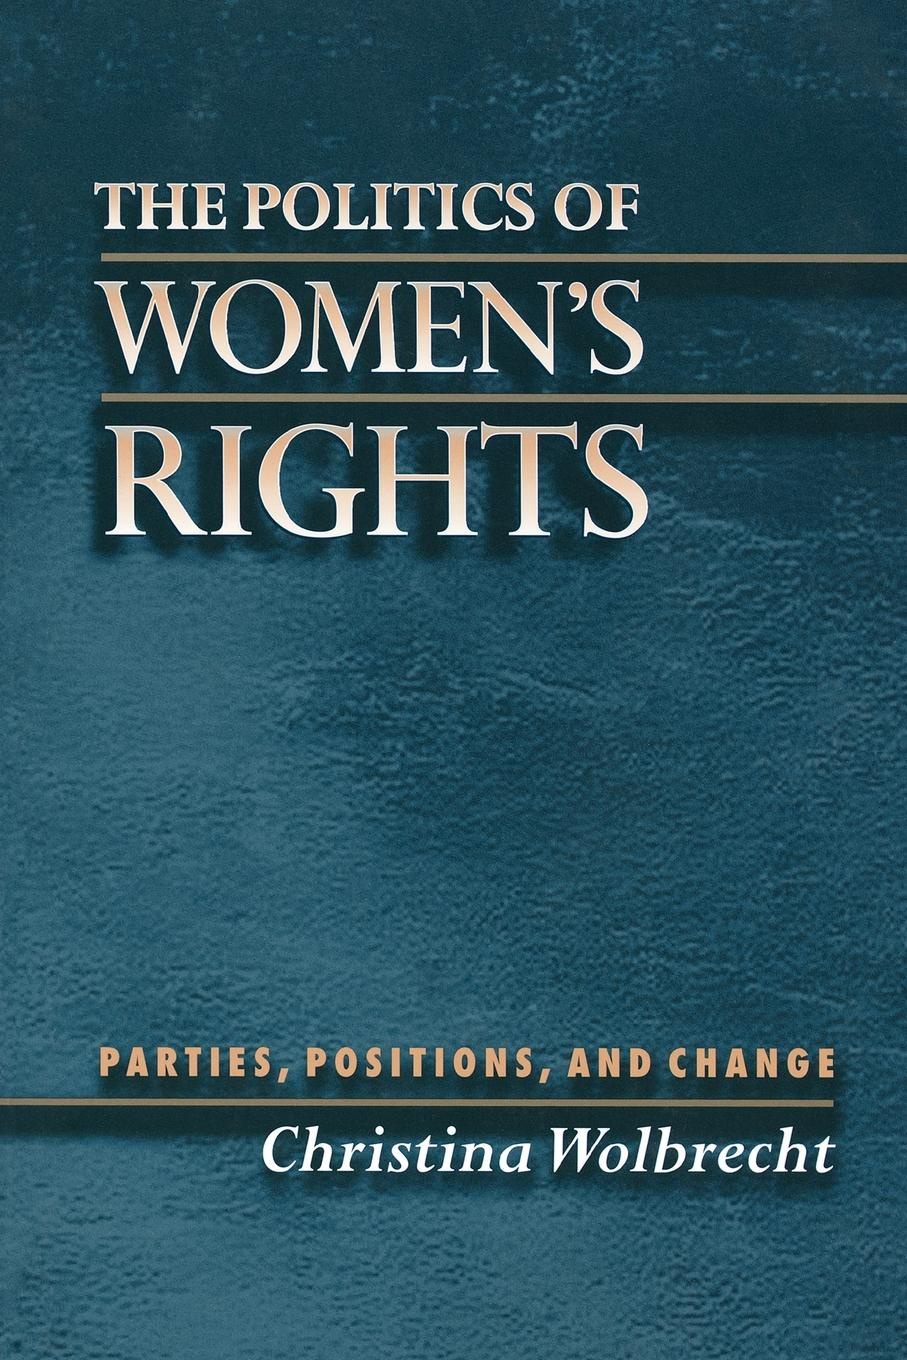 Christina Wolbrecht The Politics of Women's Rights. Parties, Positions, and Change sarah musau a distant dream exploring the impact of women rights on tanzania s development